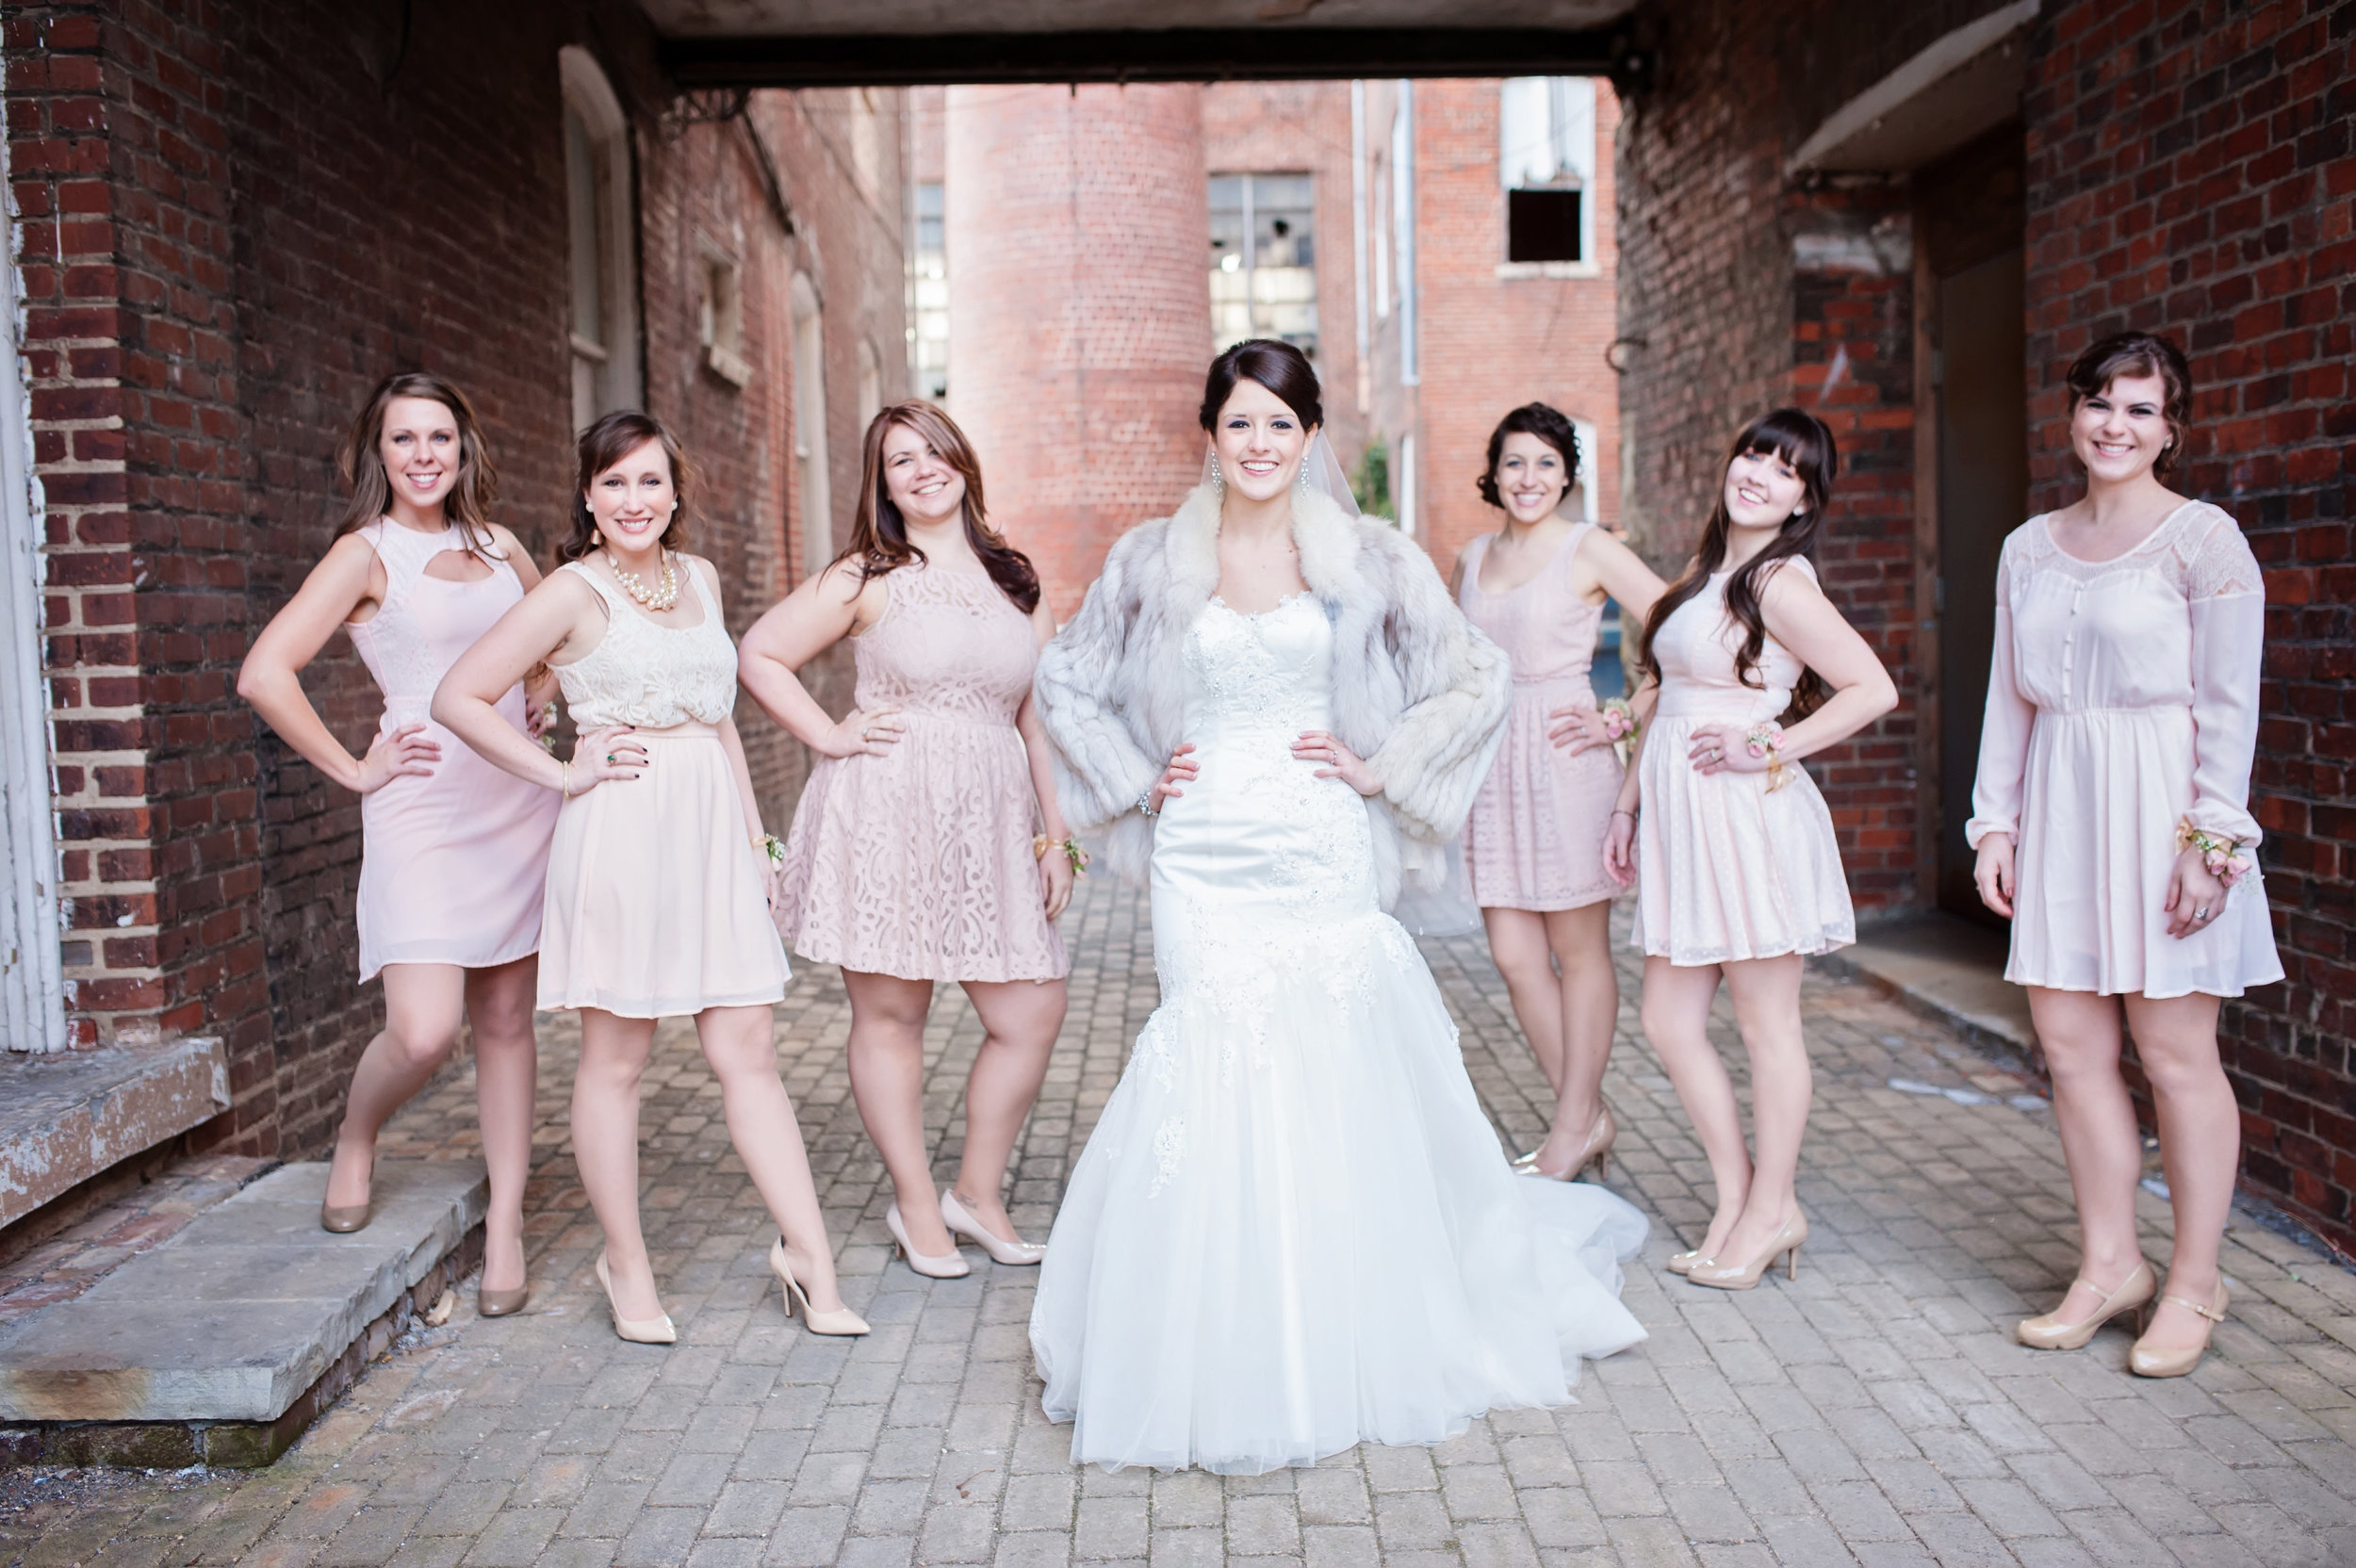 Bride and Bridesmaids at Industrial Glam Wedding at The Old Woolen Mill